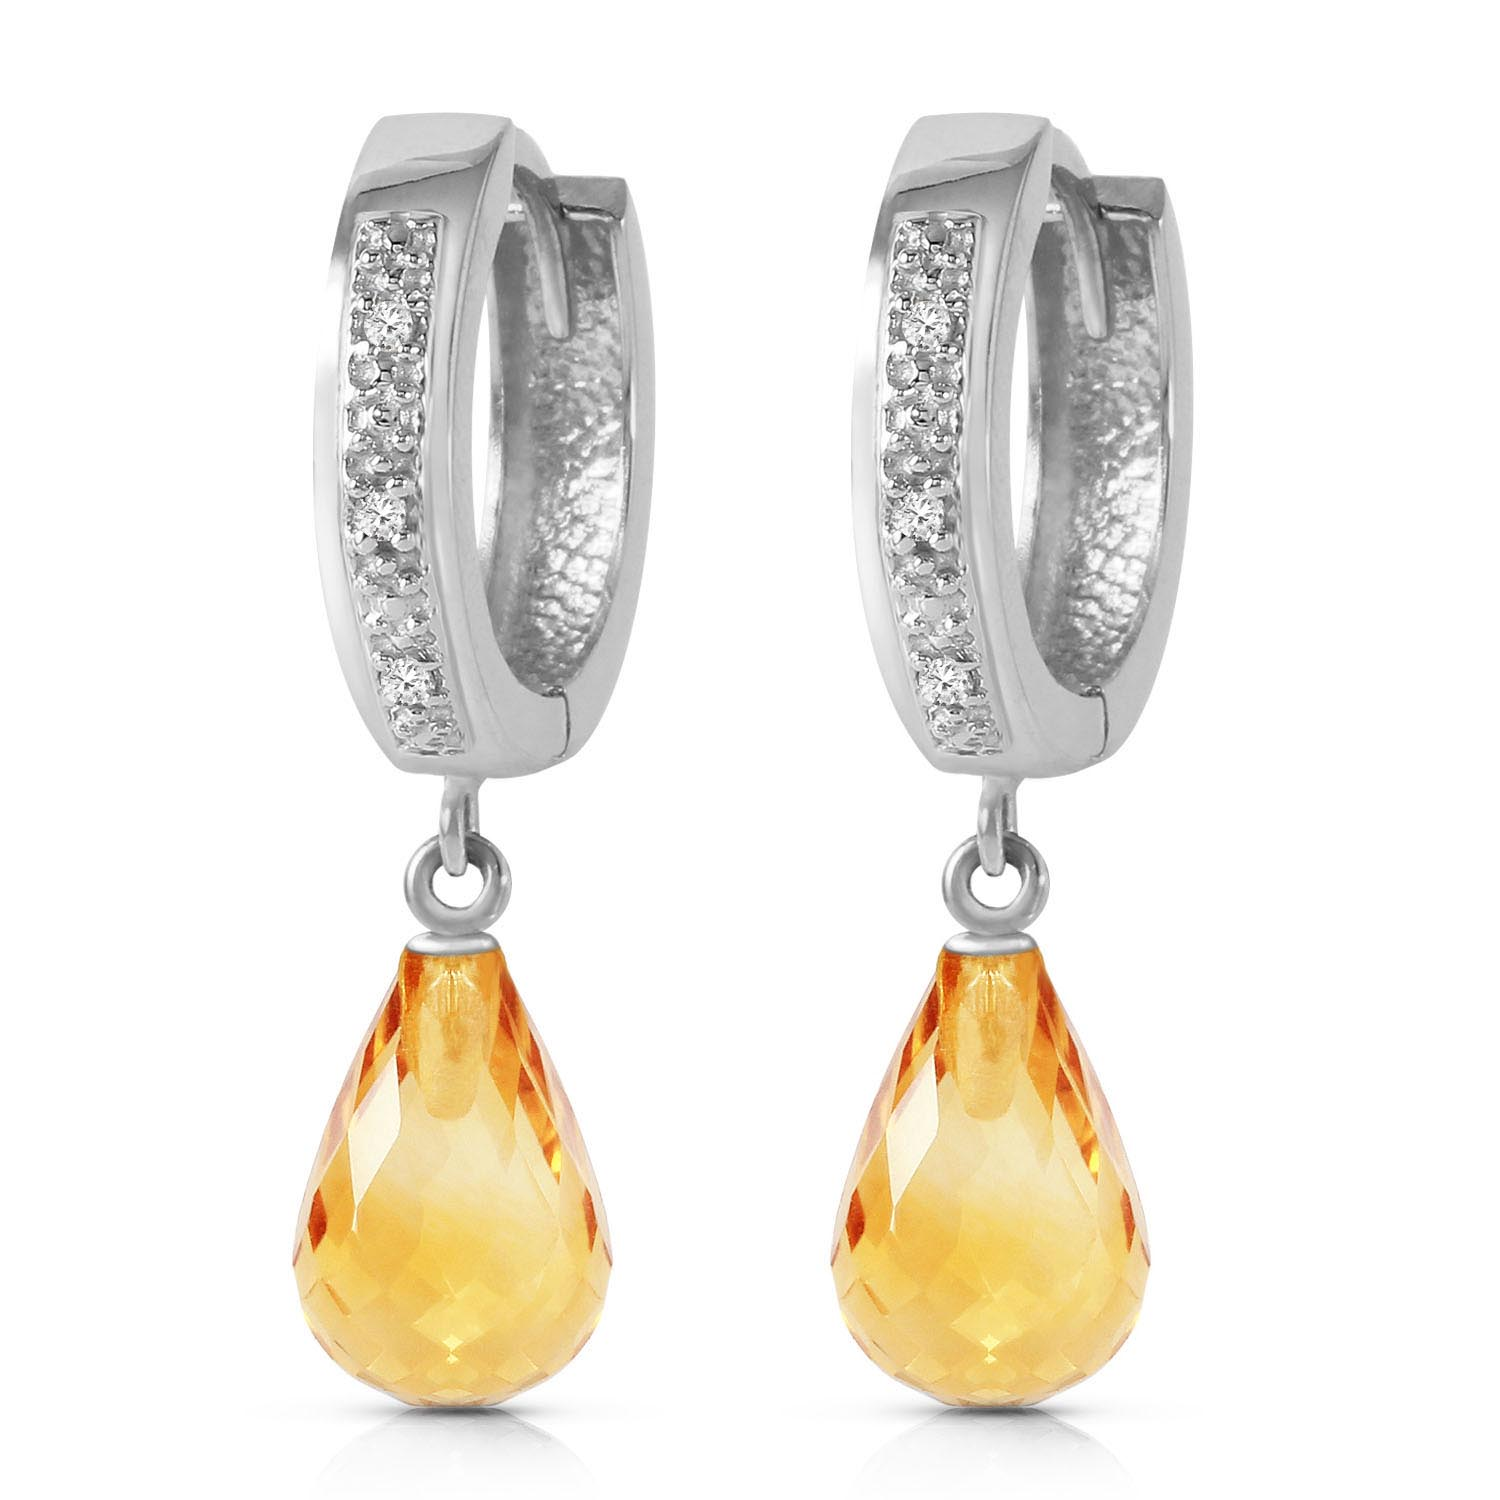 Diamond and Citrine Earrings in 9ct White Gold